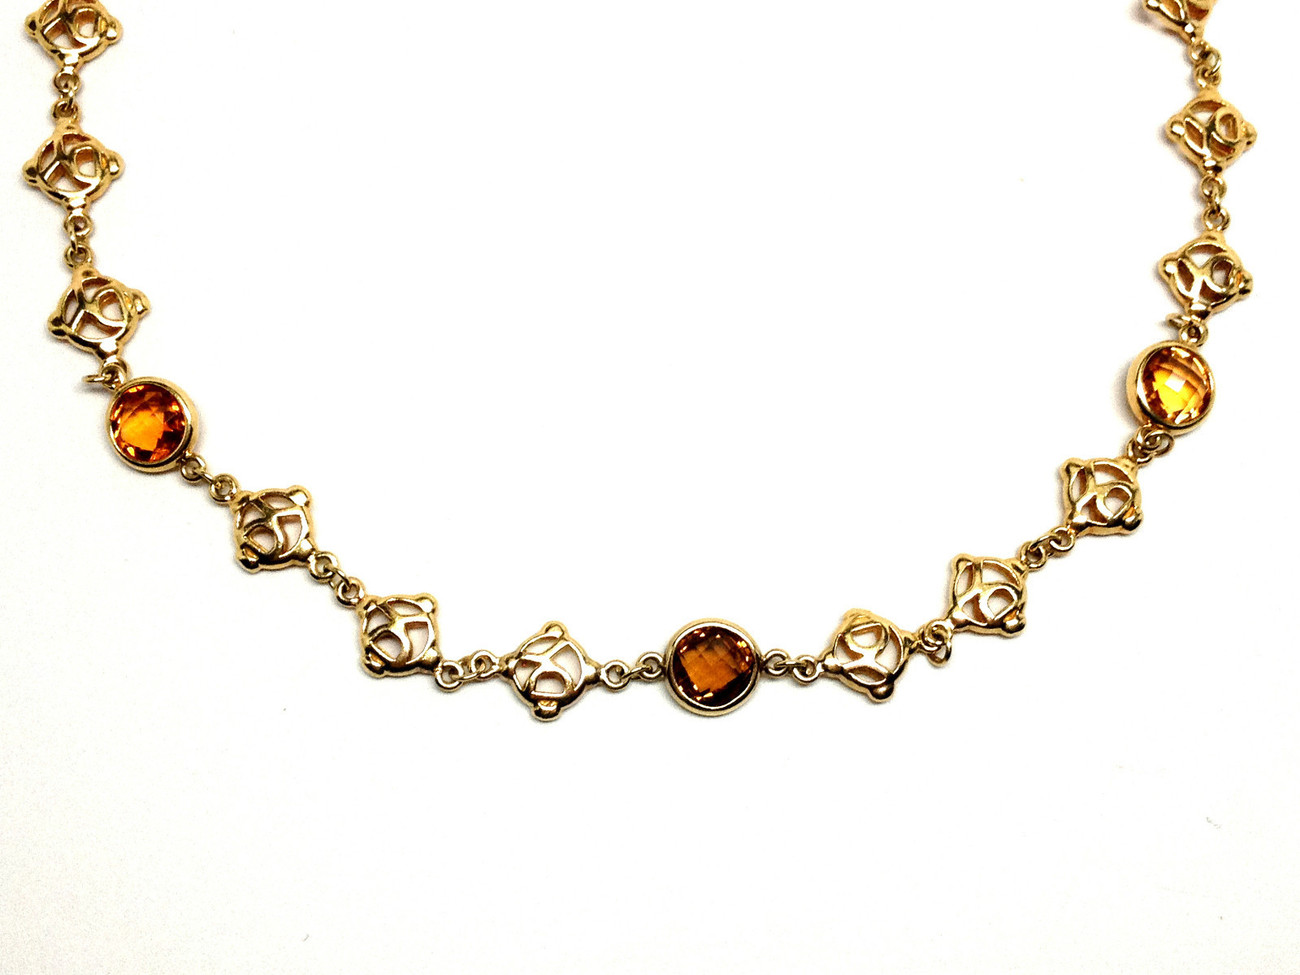 "Authentic DAVID YURMAN 18K Yellow Gold & Citrine / Smoky Quartz 16"" Necklace"